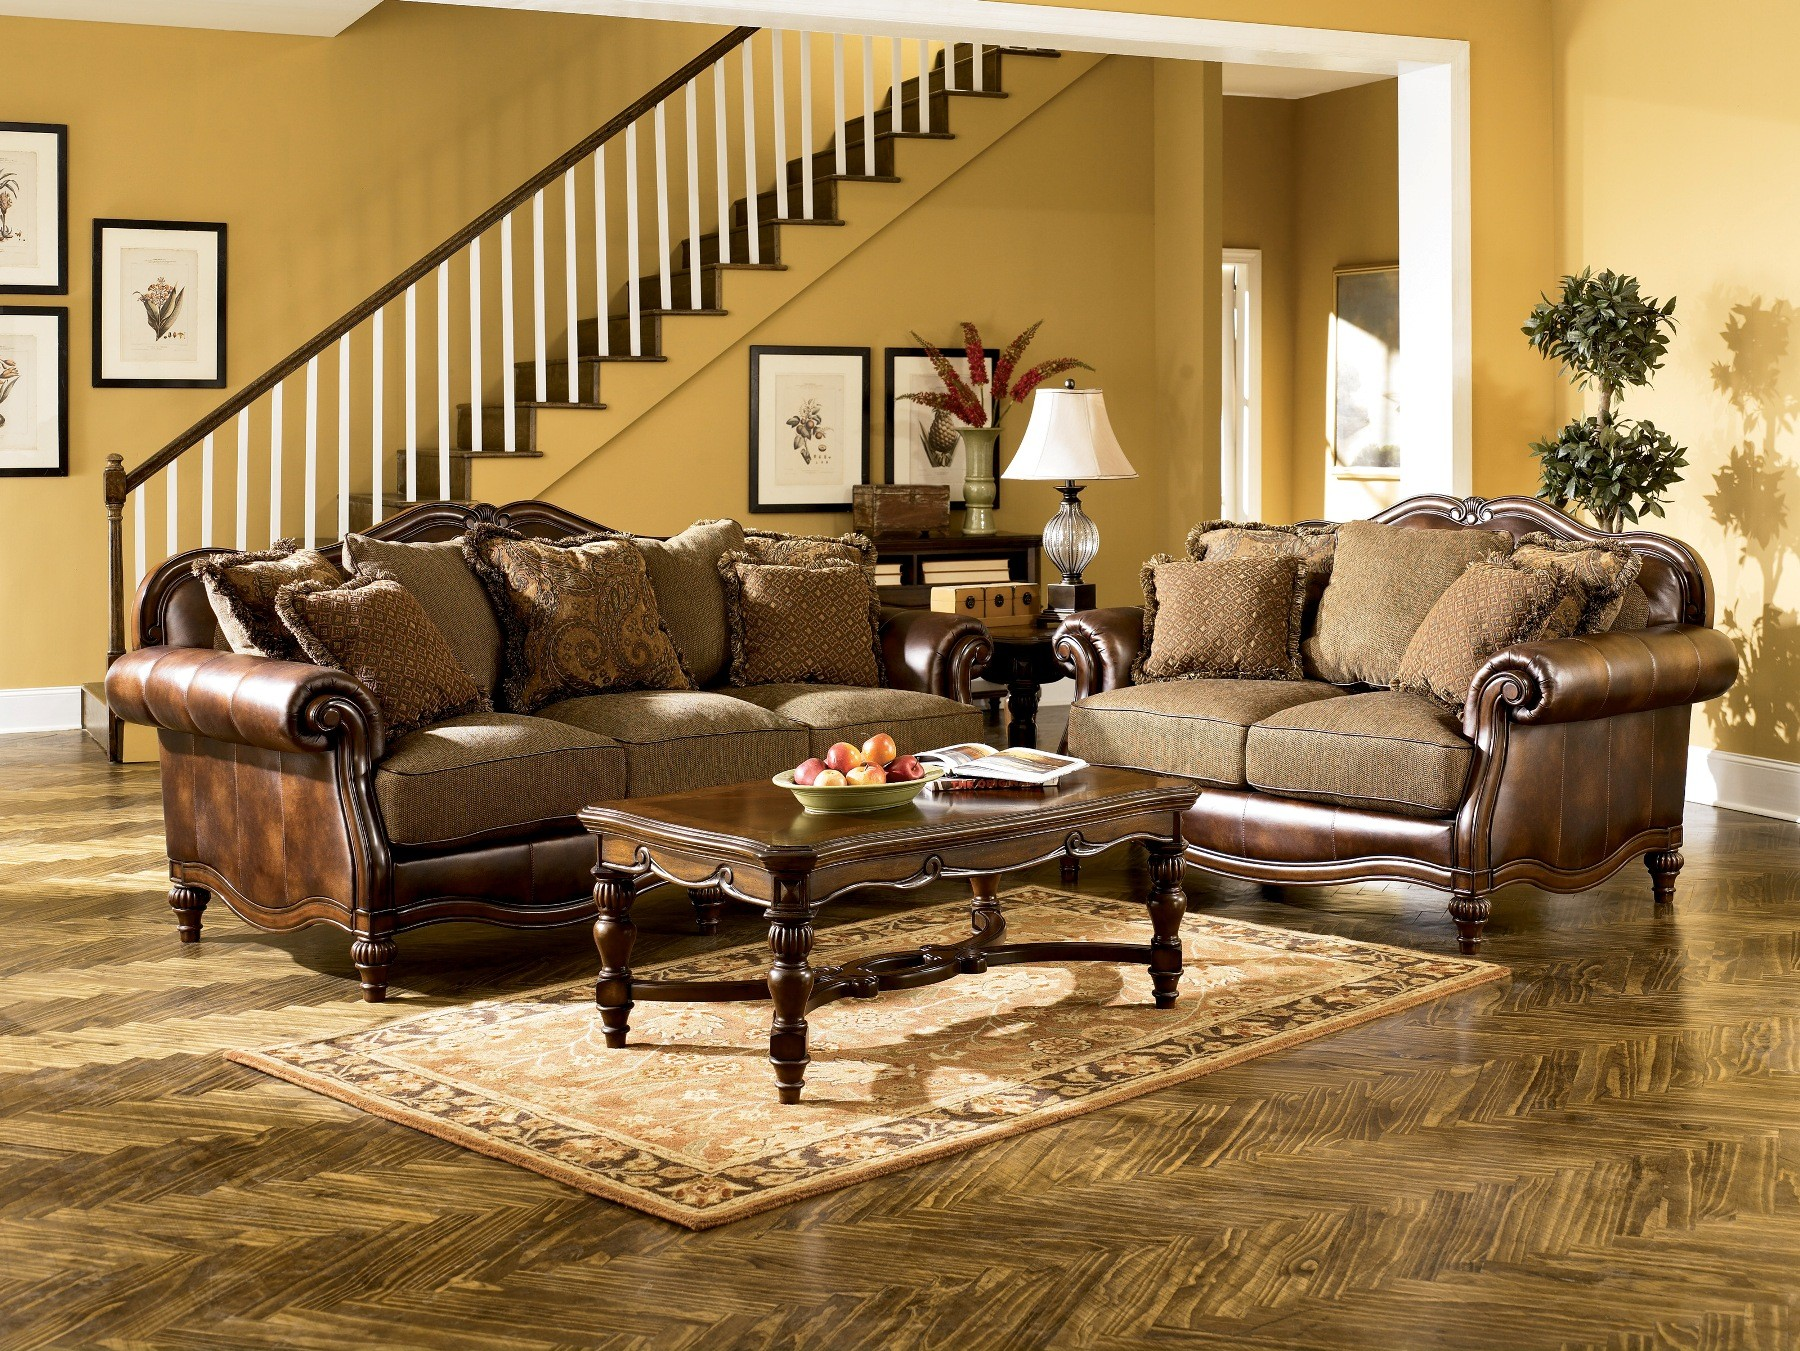 Claremore Antique Living Room Set from Ashley (84303) | Coleman ...